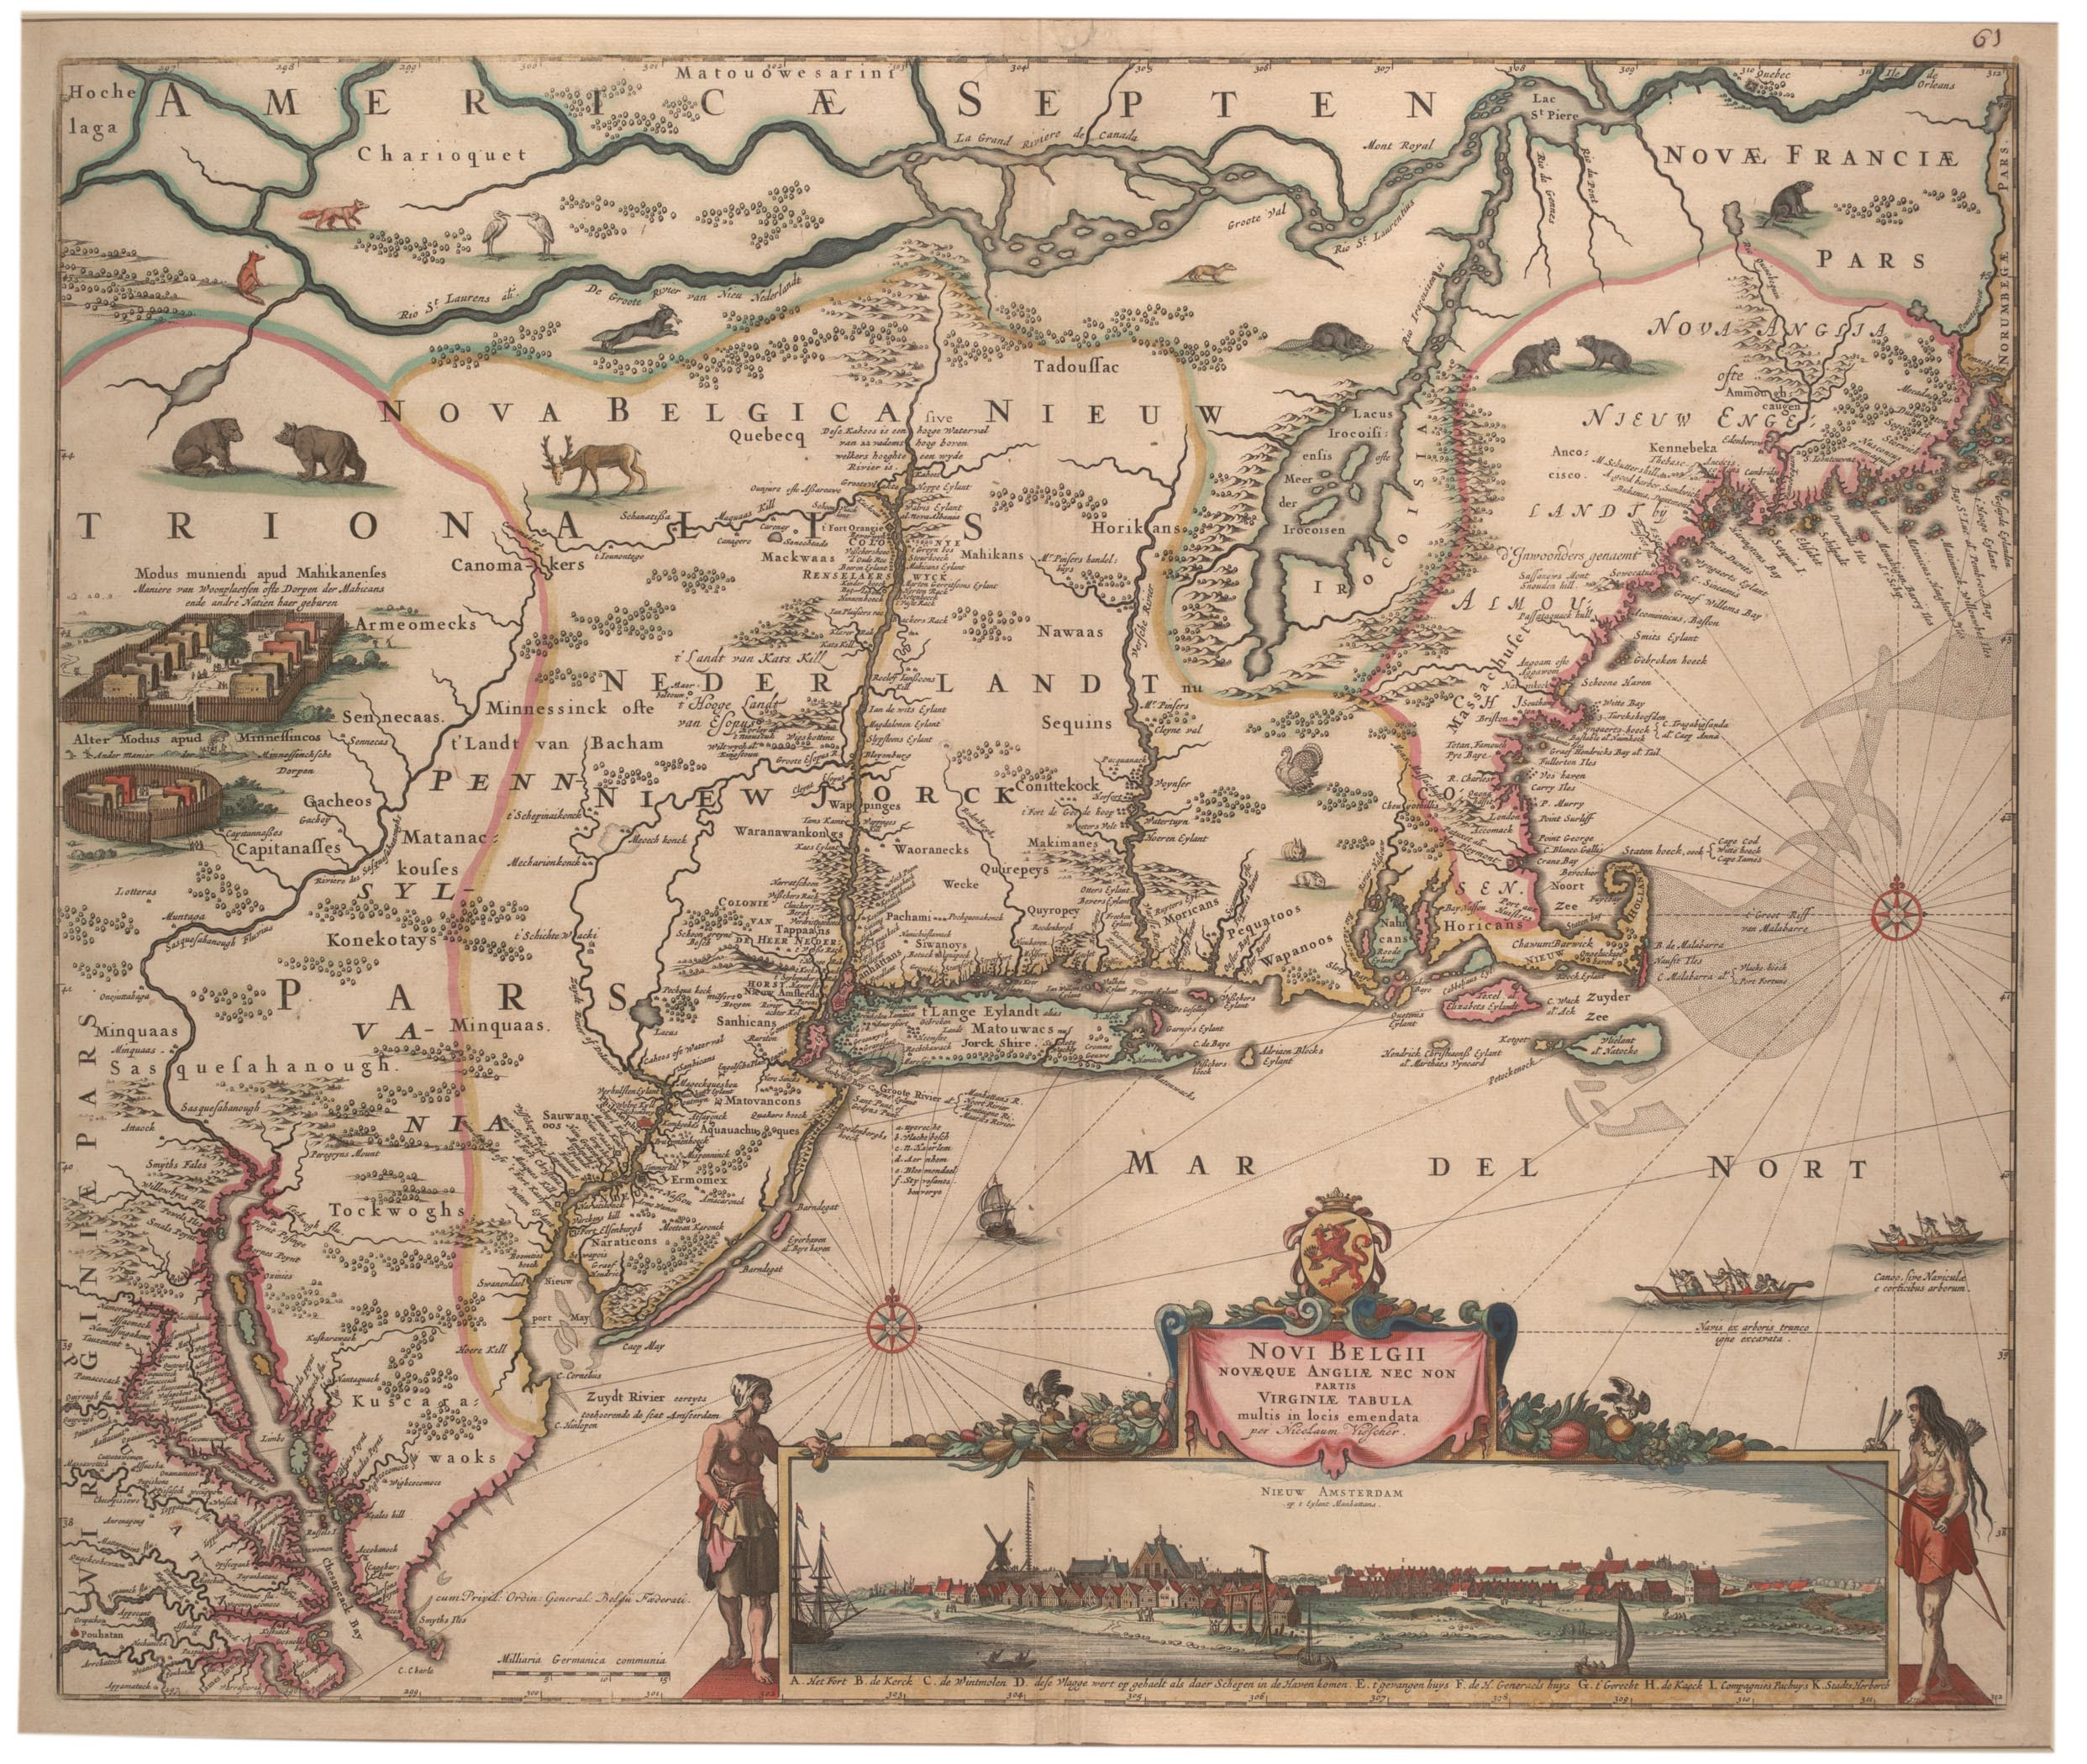 Novi Belgi Novaeque Angliae [New Netherland and New England], 1682 (Gilder  Lehrman Collection) ...